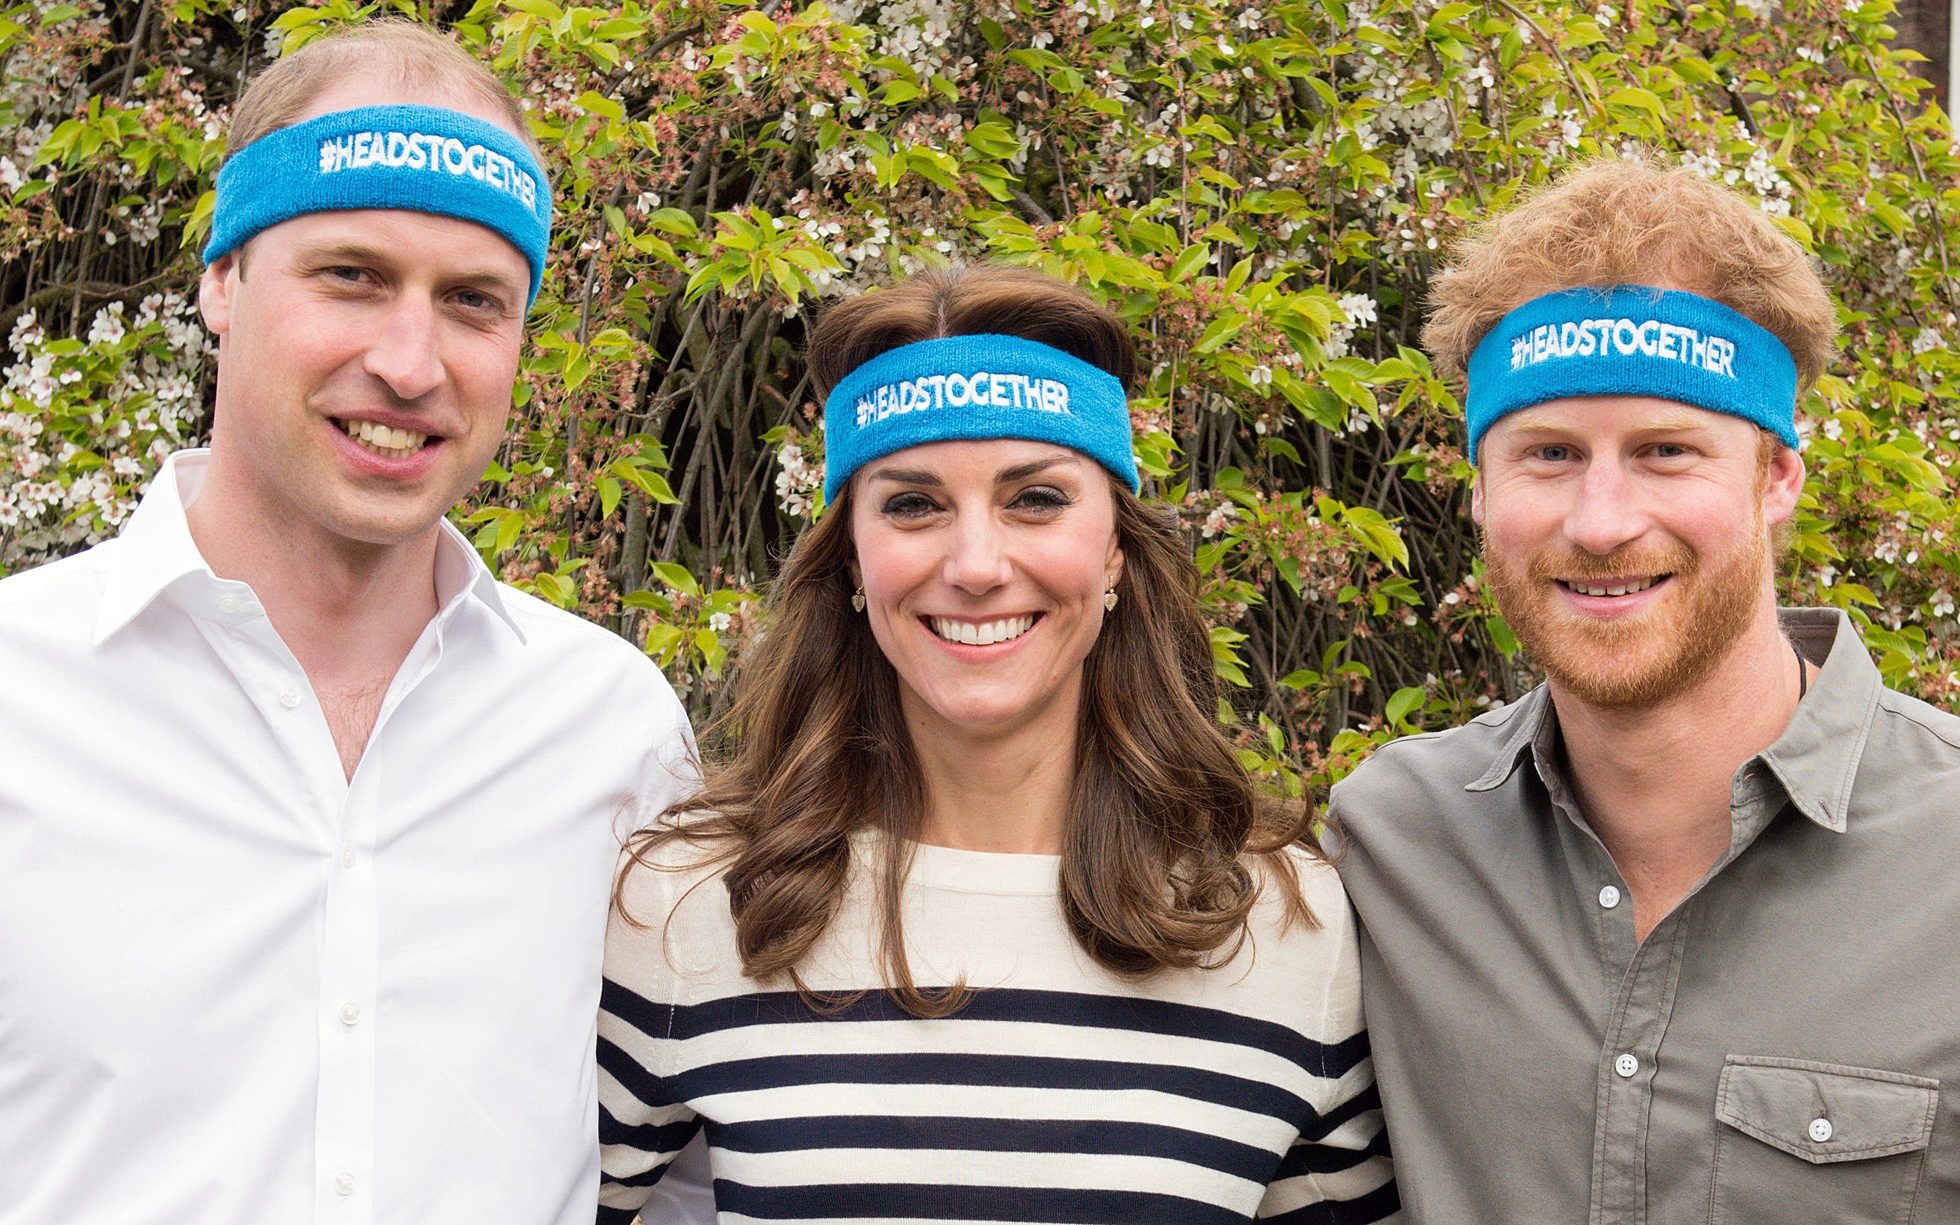 The young royals have focused on bringing charities together, with Heads Together